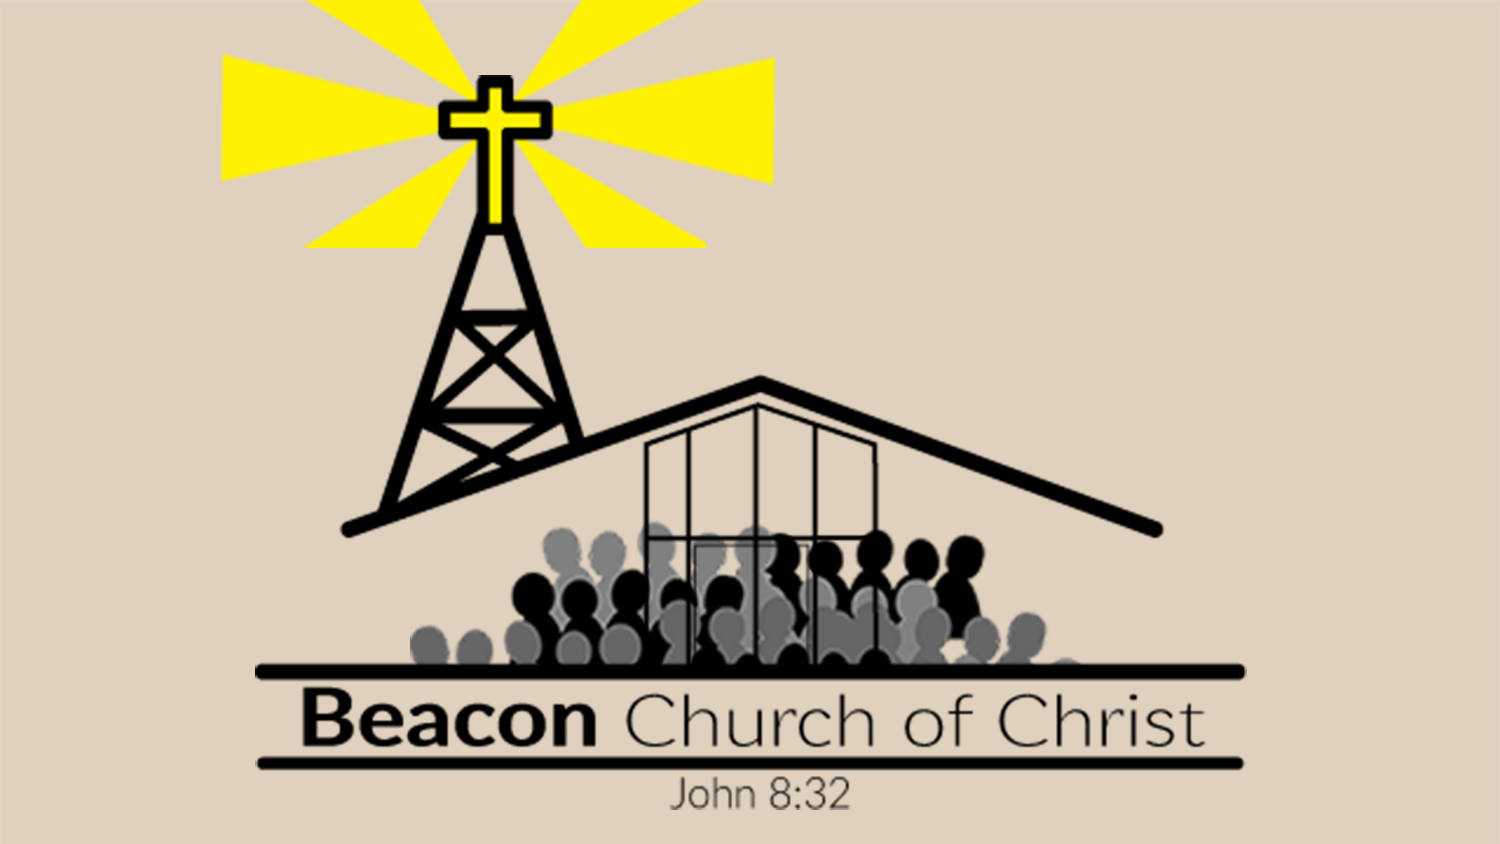 Beacon church of Christ, West Monroe, LA